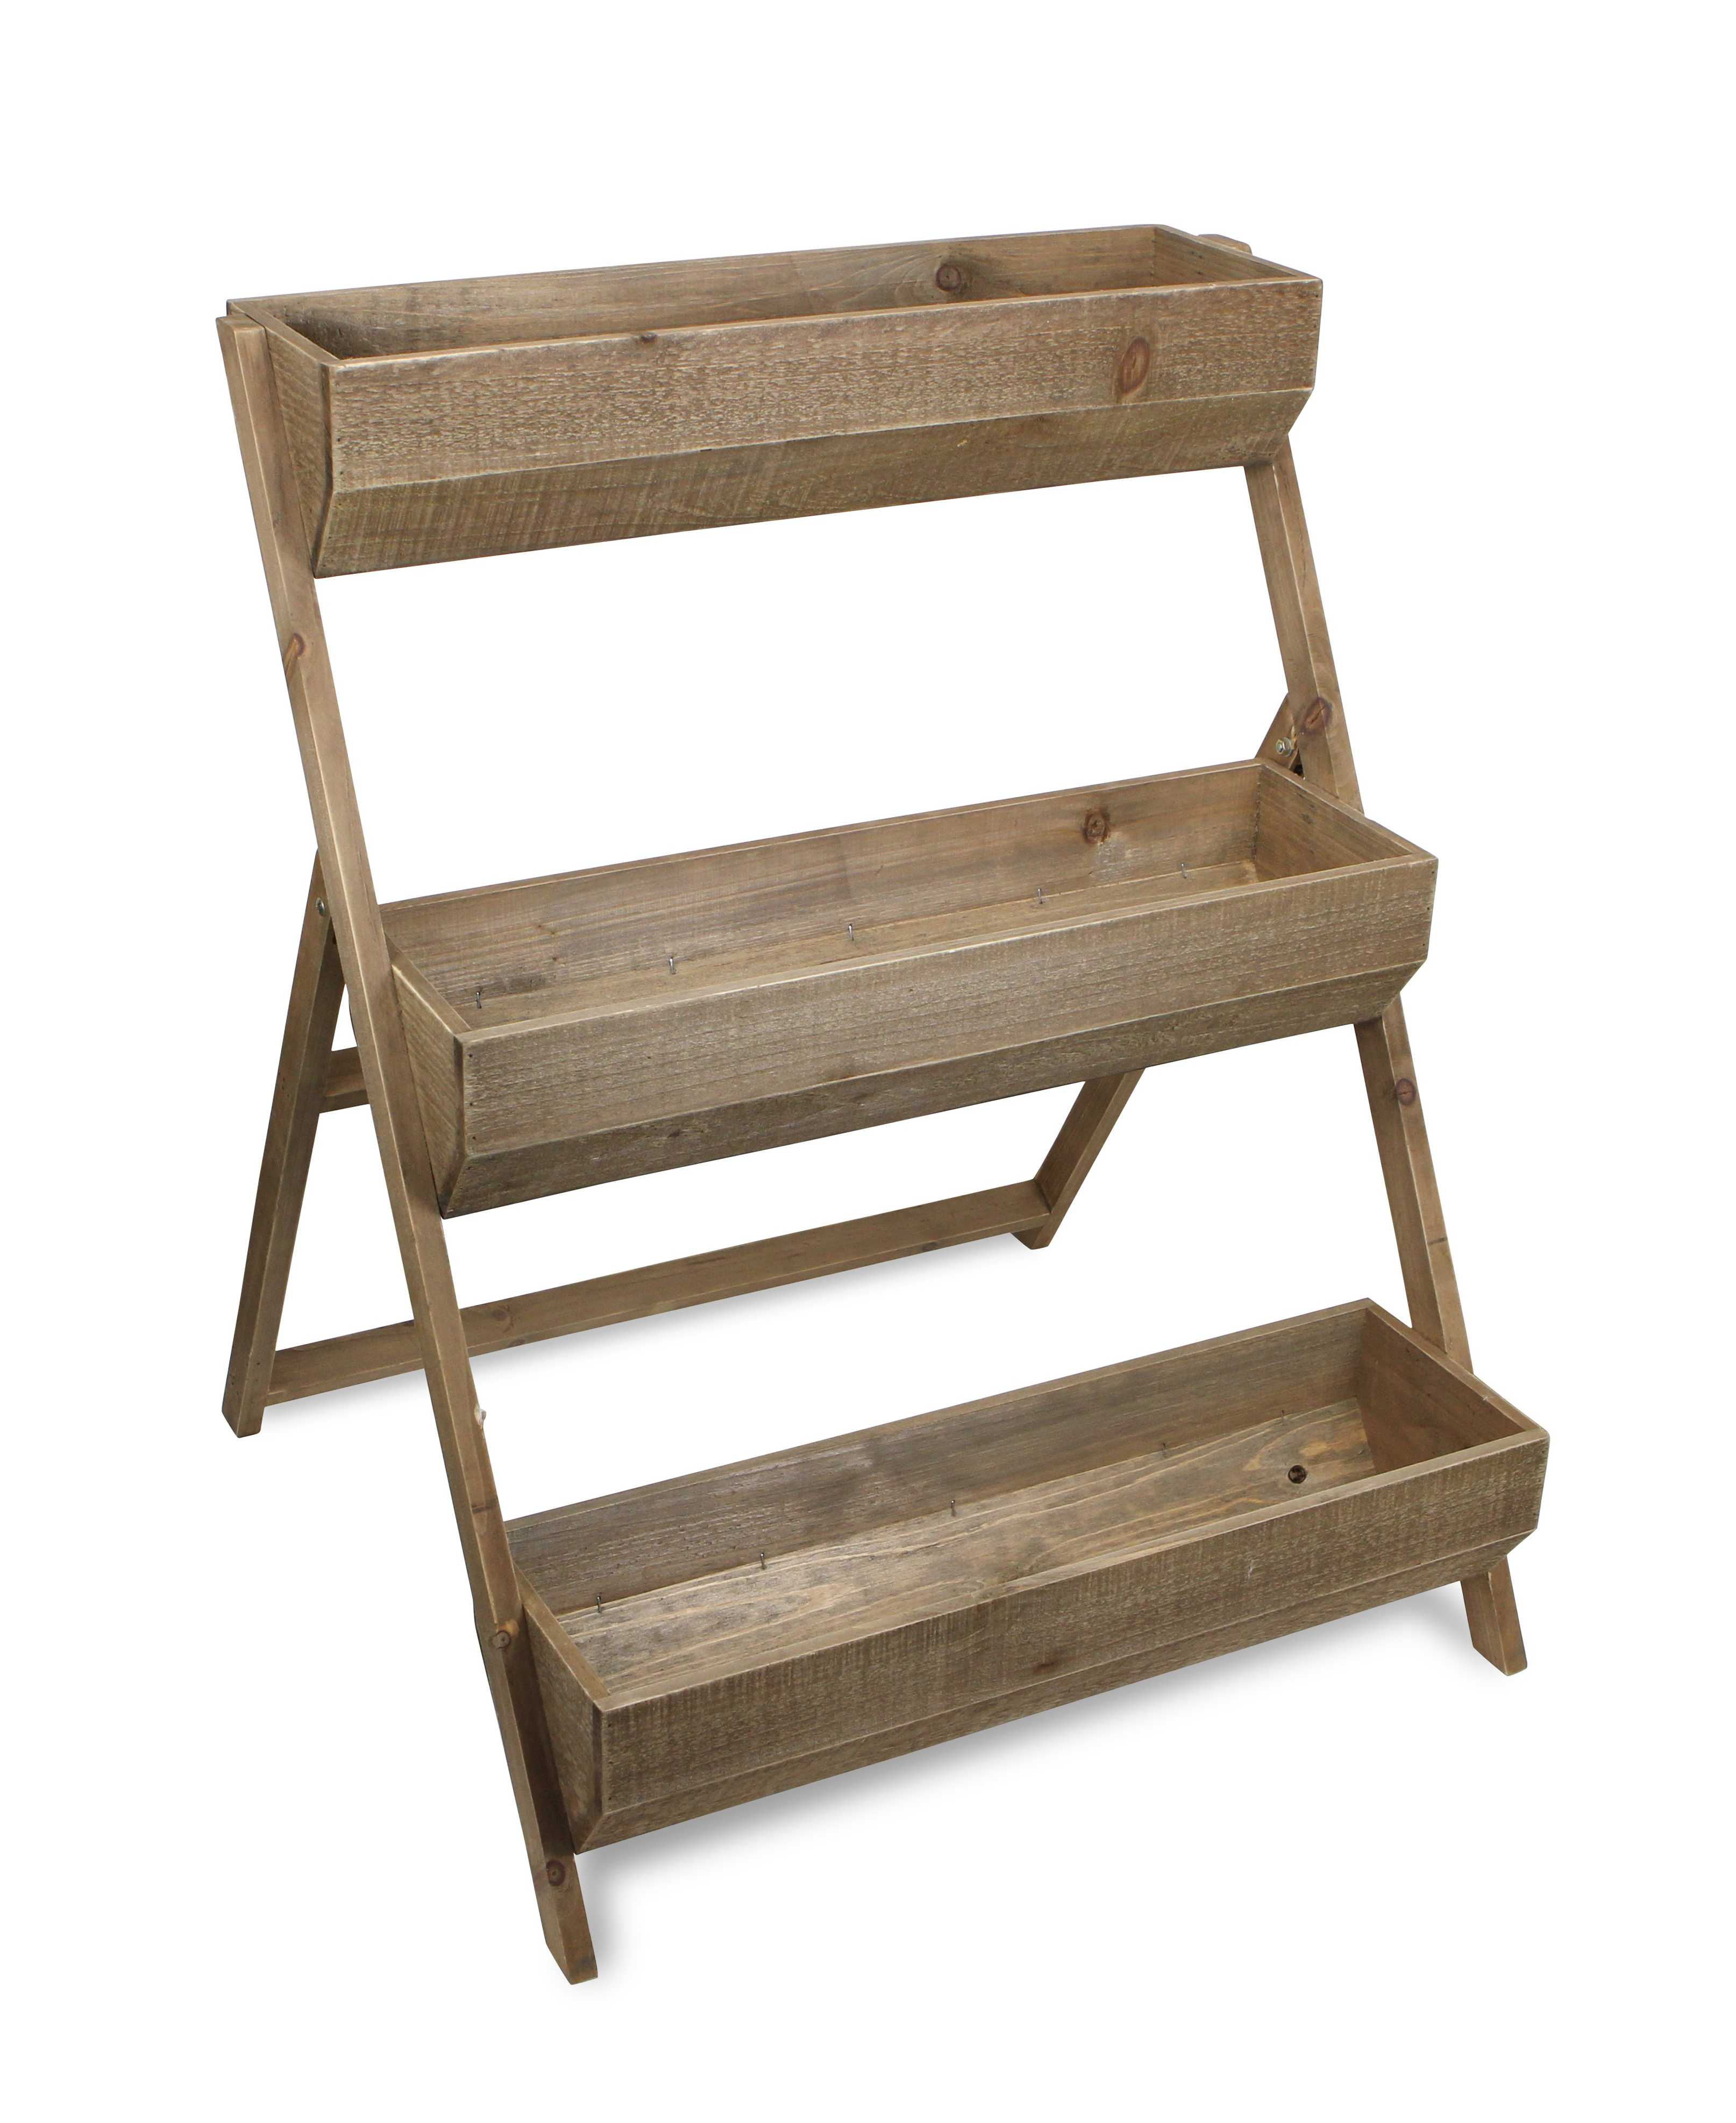 3 Tier Wooden Shelves Storage Plant Stand